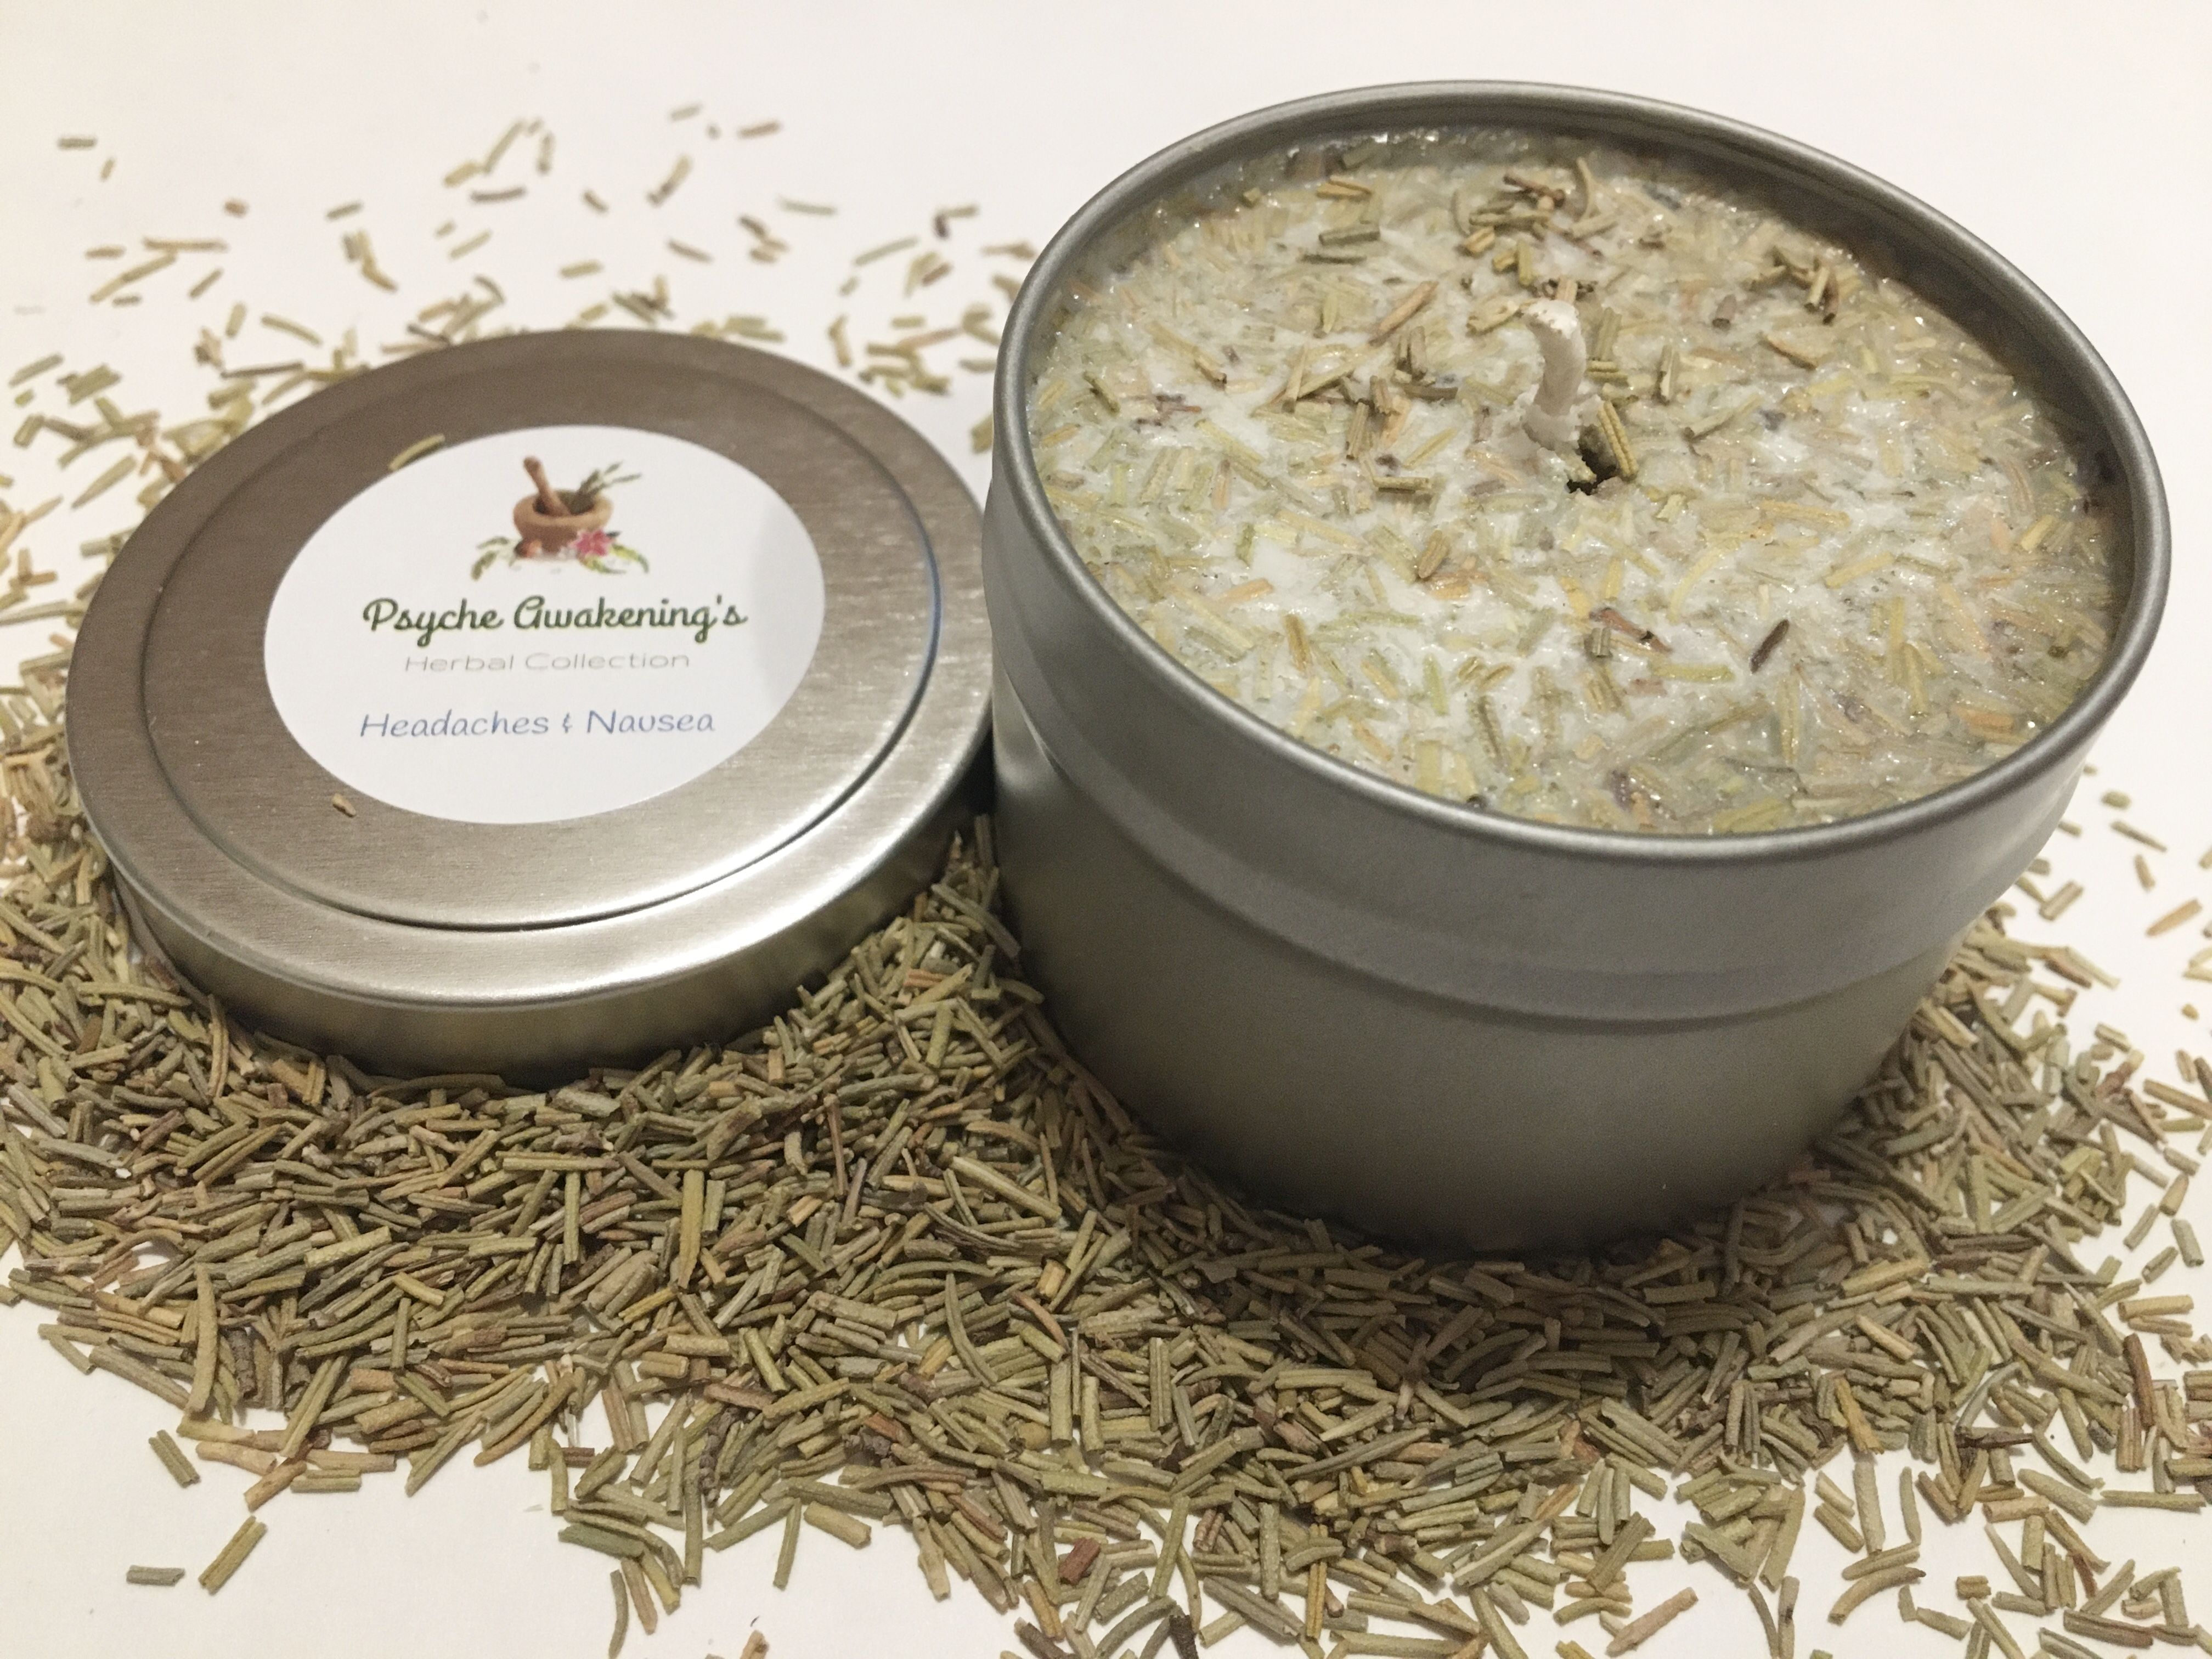 Herbal Candles for Headaches & Nausea #aromatherapycandles